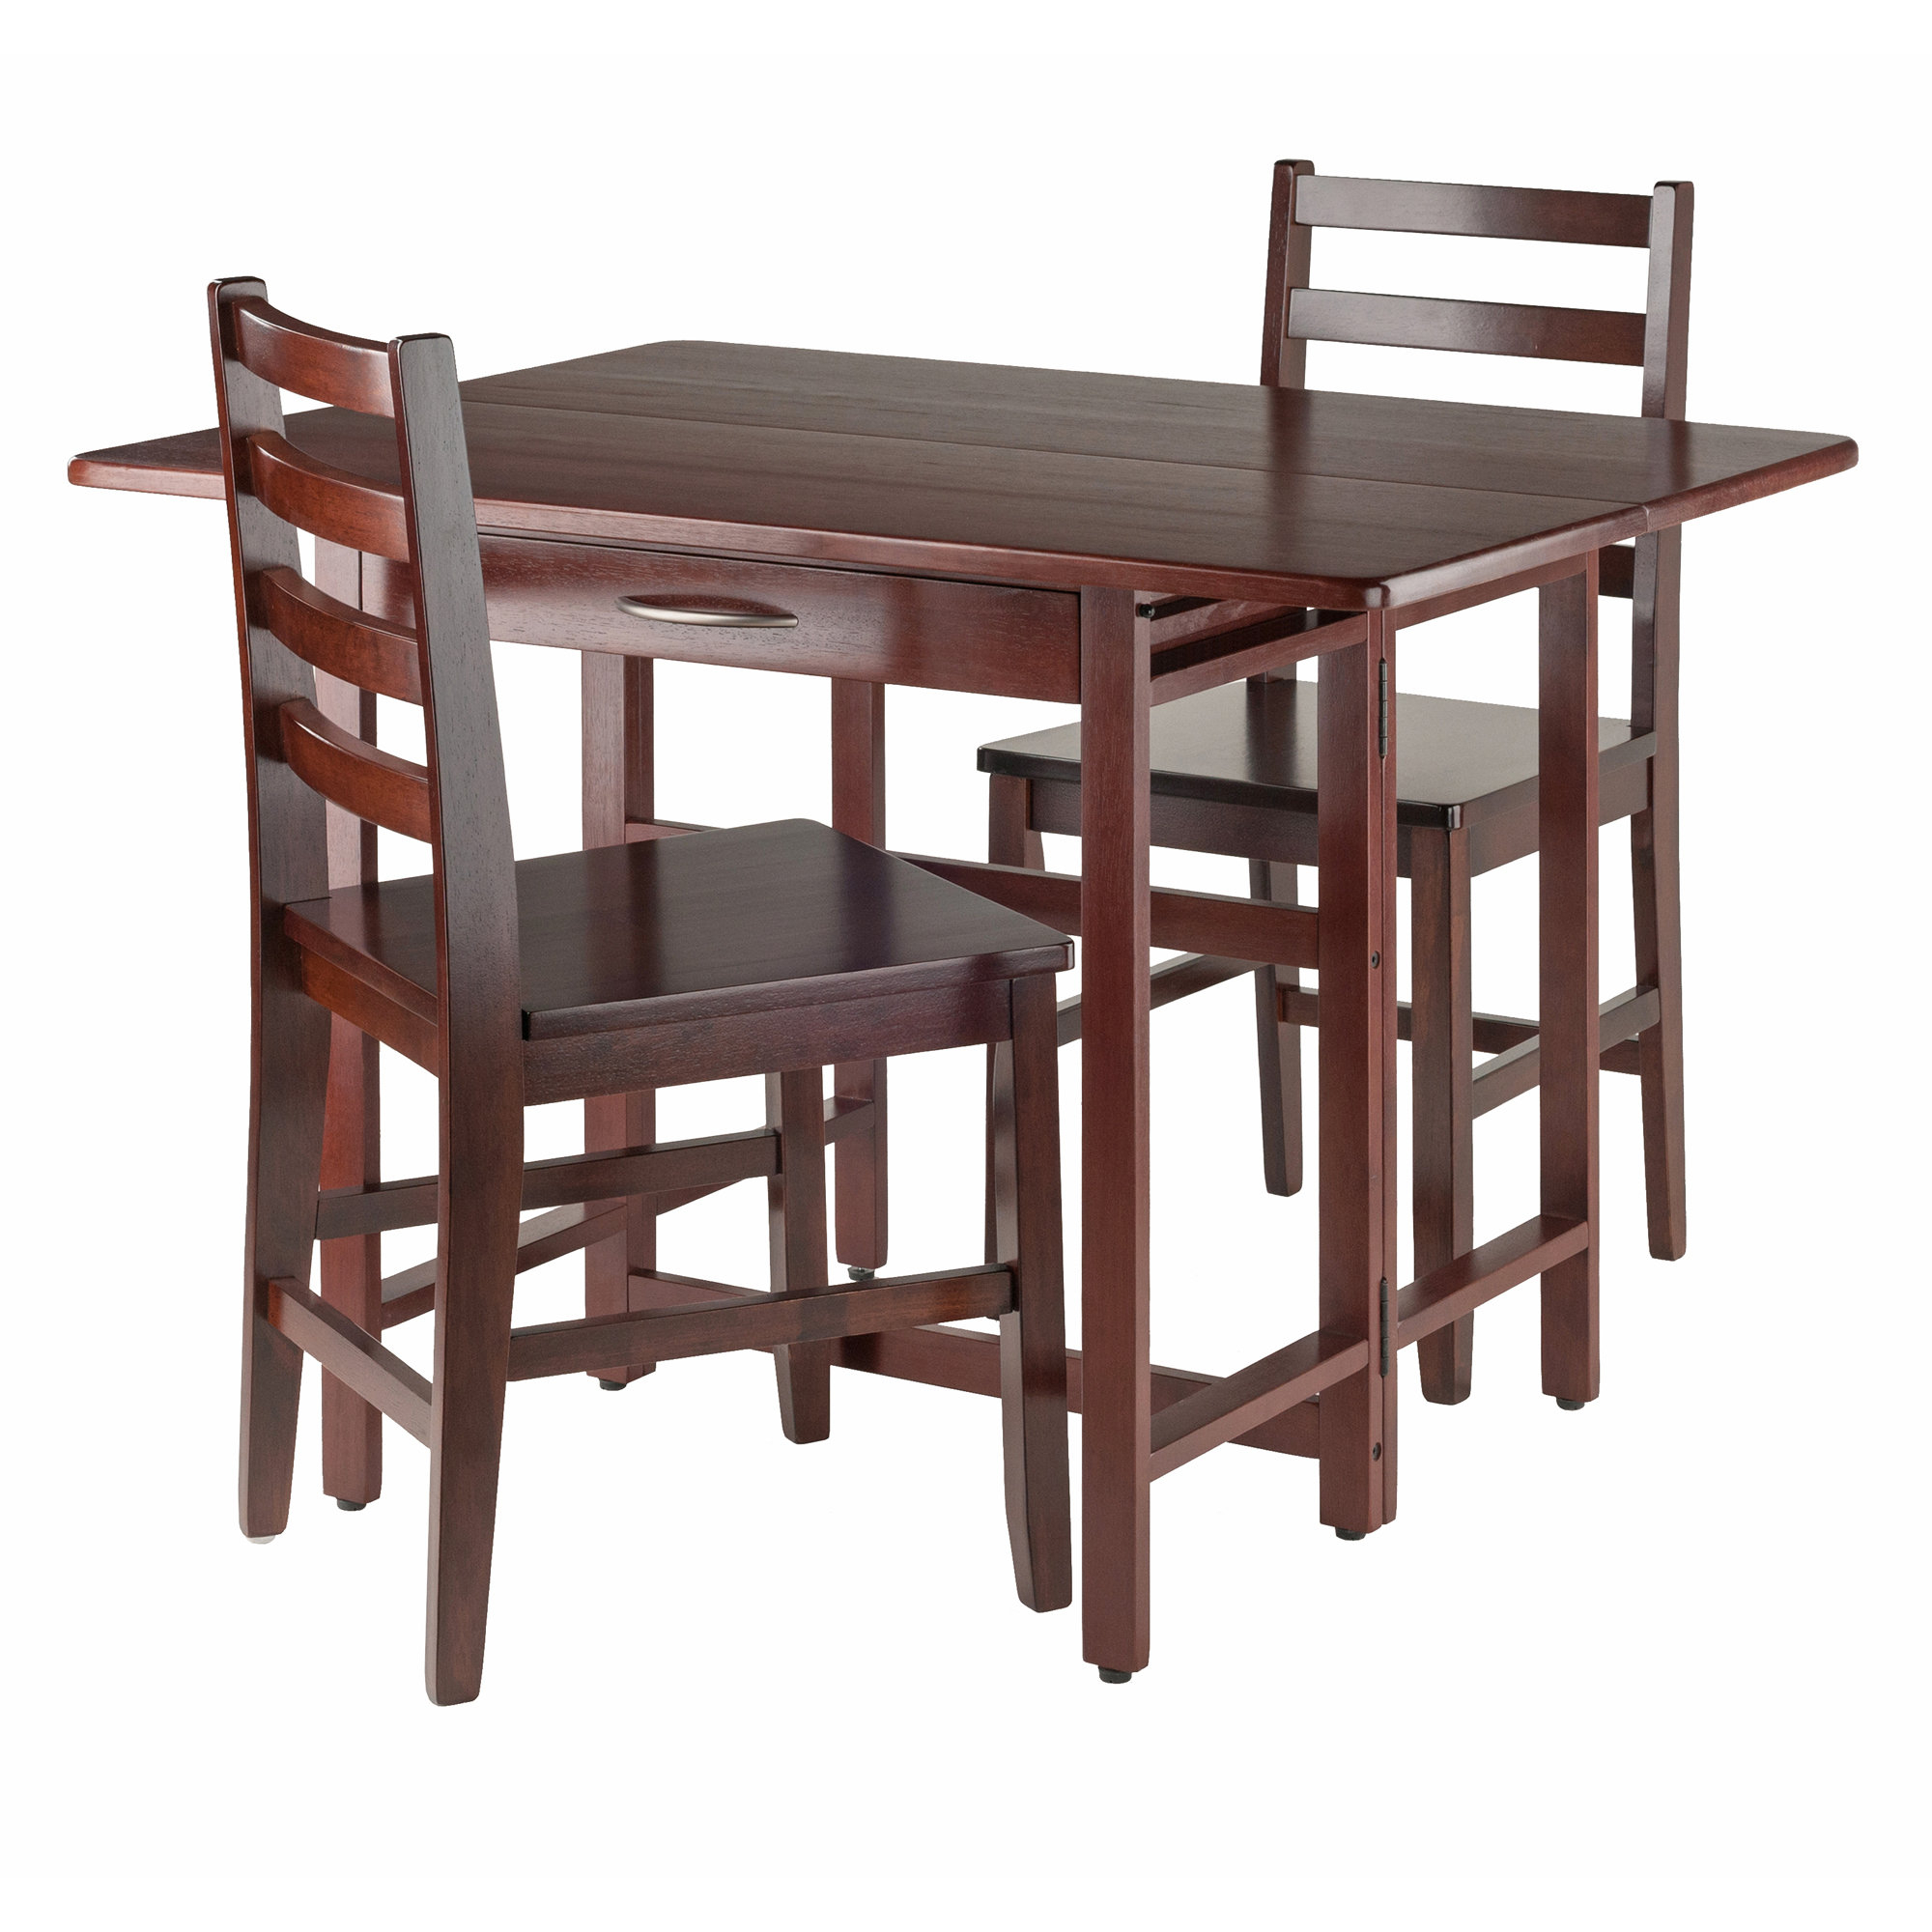 Trendy Red Barrel Studio Culley 3 Piece Drop Leaf Dining Set & Reviews Intended For Crownover 3 Piece Bar Table Sets (#17 of 20)